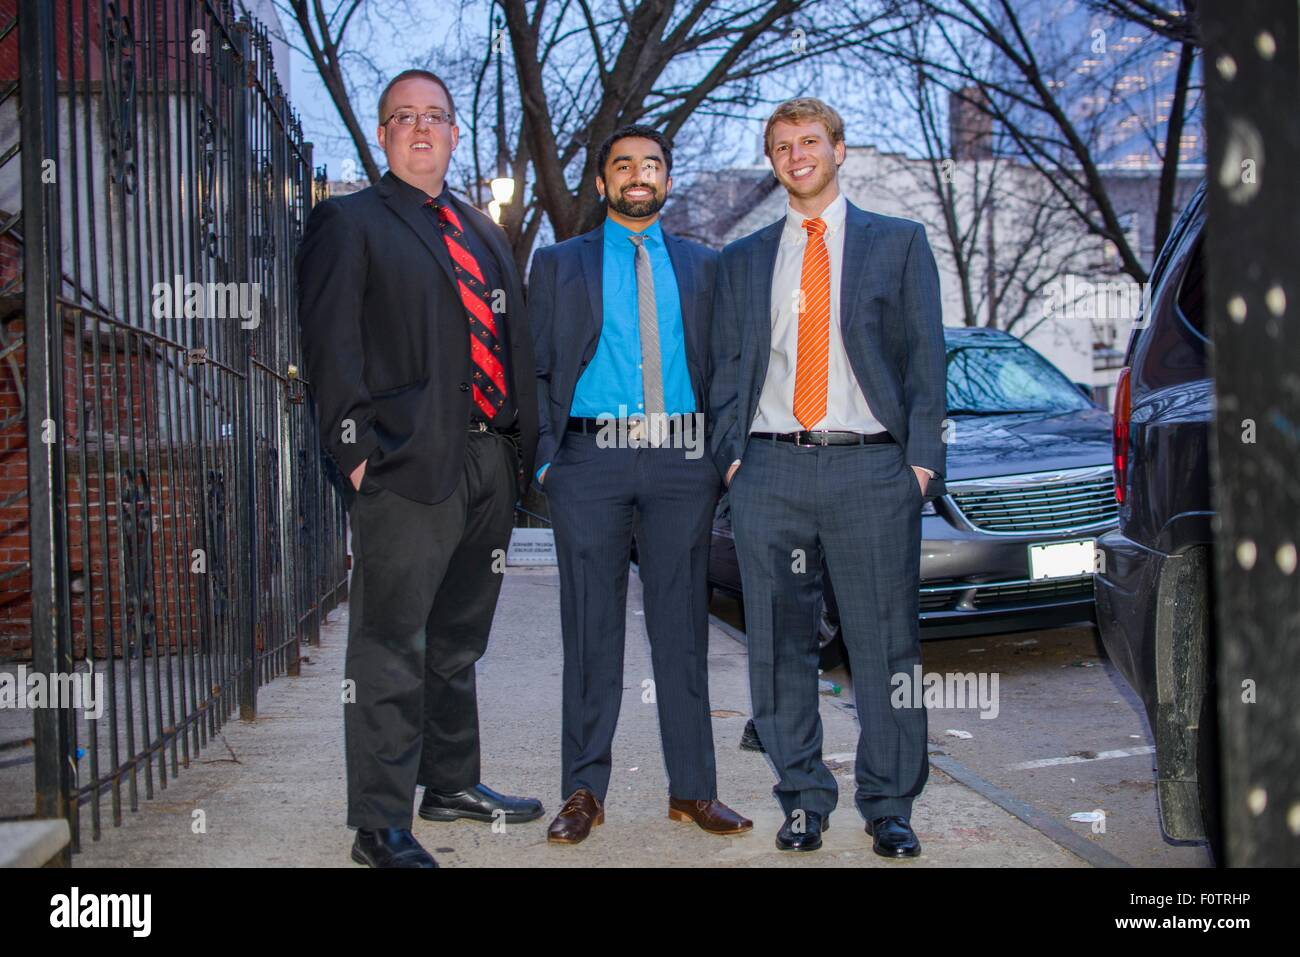 Portrait of three young male friends wearing suits for night out - Stock Image